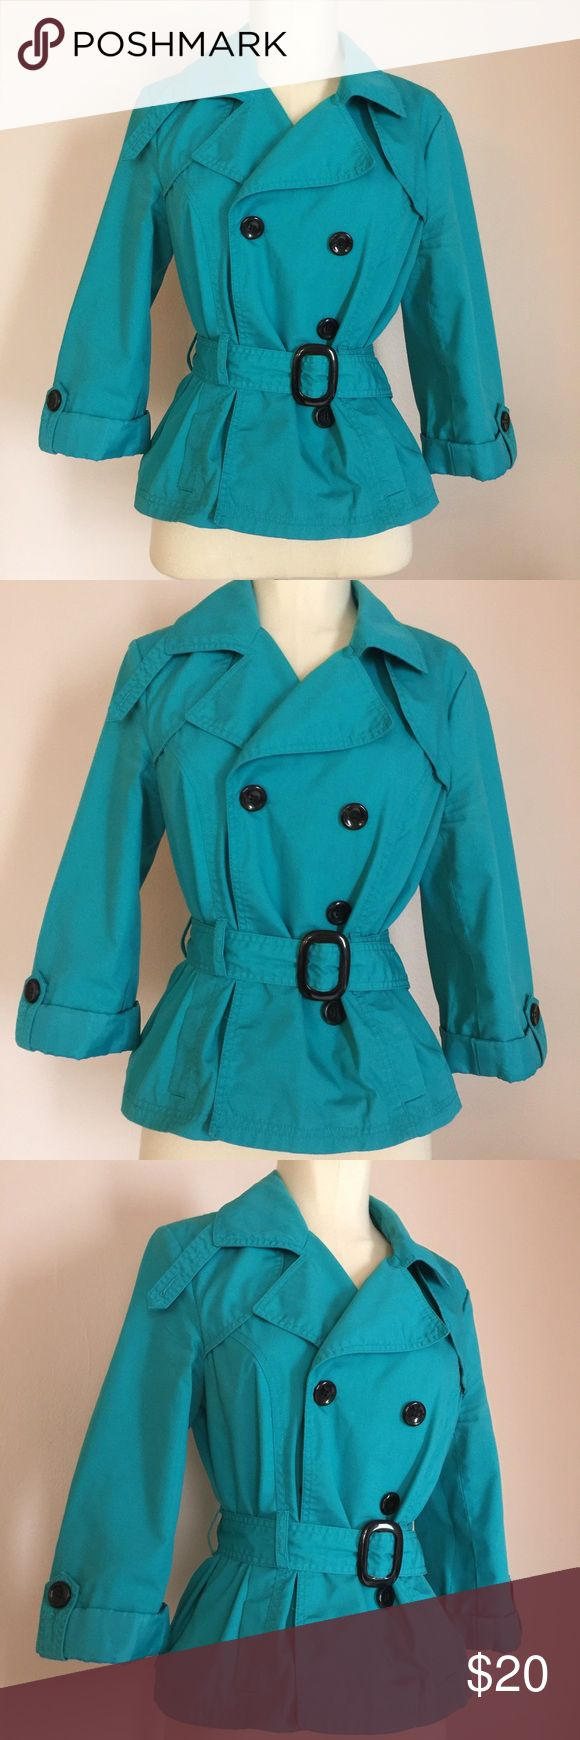 """H&M Teal Blue Short Trench Coat Summer Style 8 M Bright blue lightweight trench coat by H&M. This adorable jacket is like new, having only been worn once. Even comes with extra buttons! Made of polyester and has a bright plaid lining. A must for those cold Summer nights! Tagged a size 8, and would work for a size small or medium. Measures 38"""" from underarm to underarm, 36"""" at waist, and length is 22"""" from shoulder to hem. H&M Jackets & Coats Trench Coats"""